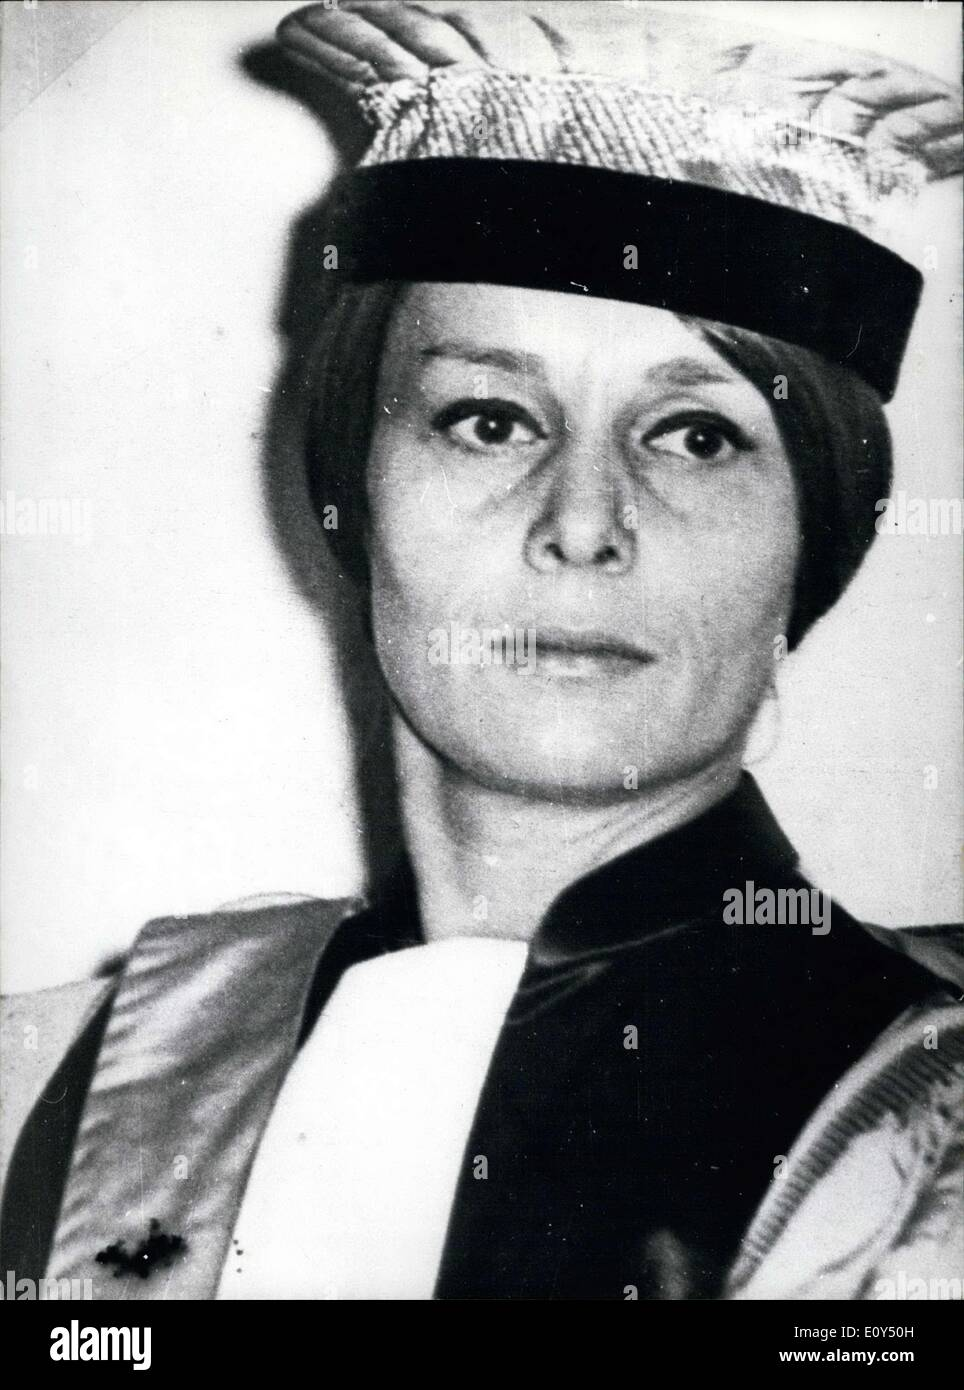 Nov. 05, 1968 - Aline Picard (pictured) was elected dean of the Arts and Humanities Department at Brest. Aline Picard who has been at the head of the literary college of this university since 1966. - Stock Image